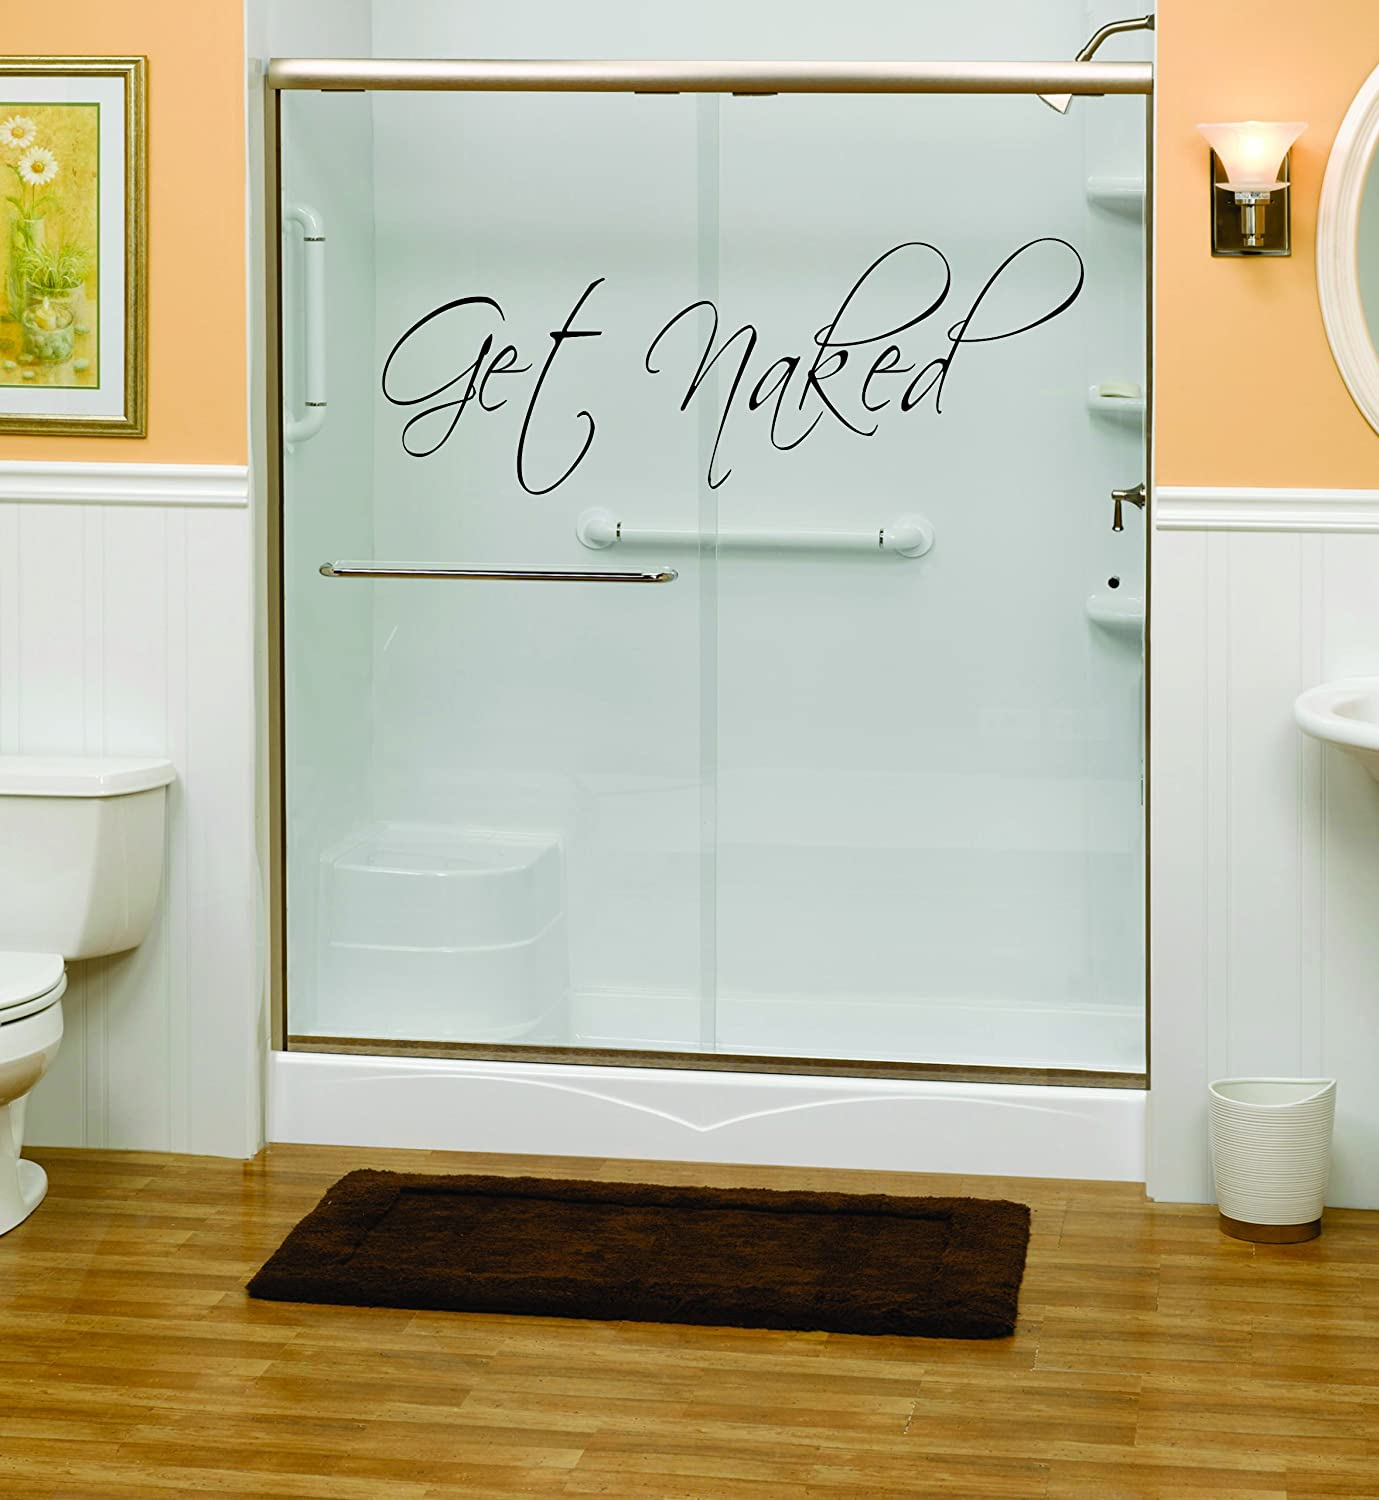 Get Naked Bathroom Shower Wall Decal Vinyl Art - Wall Decor ...